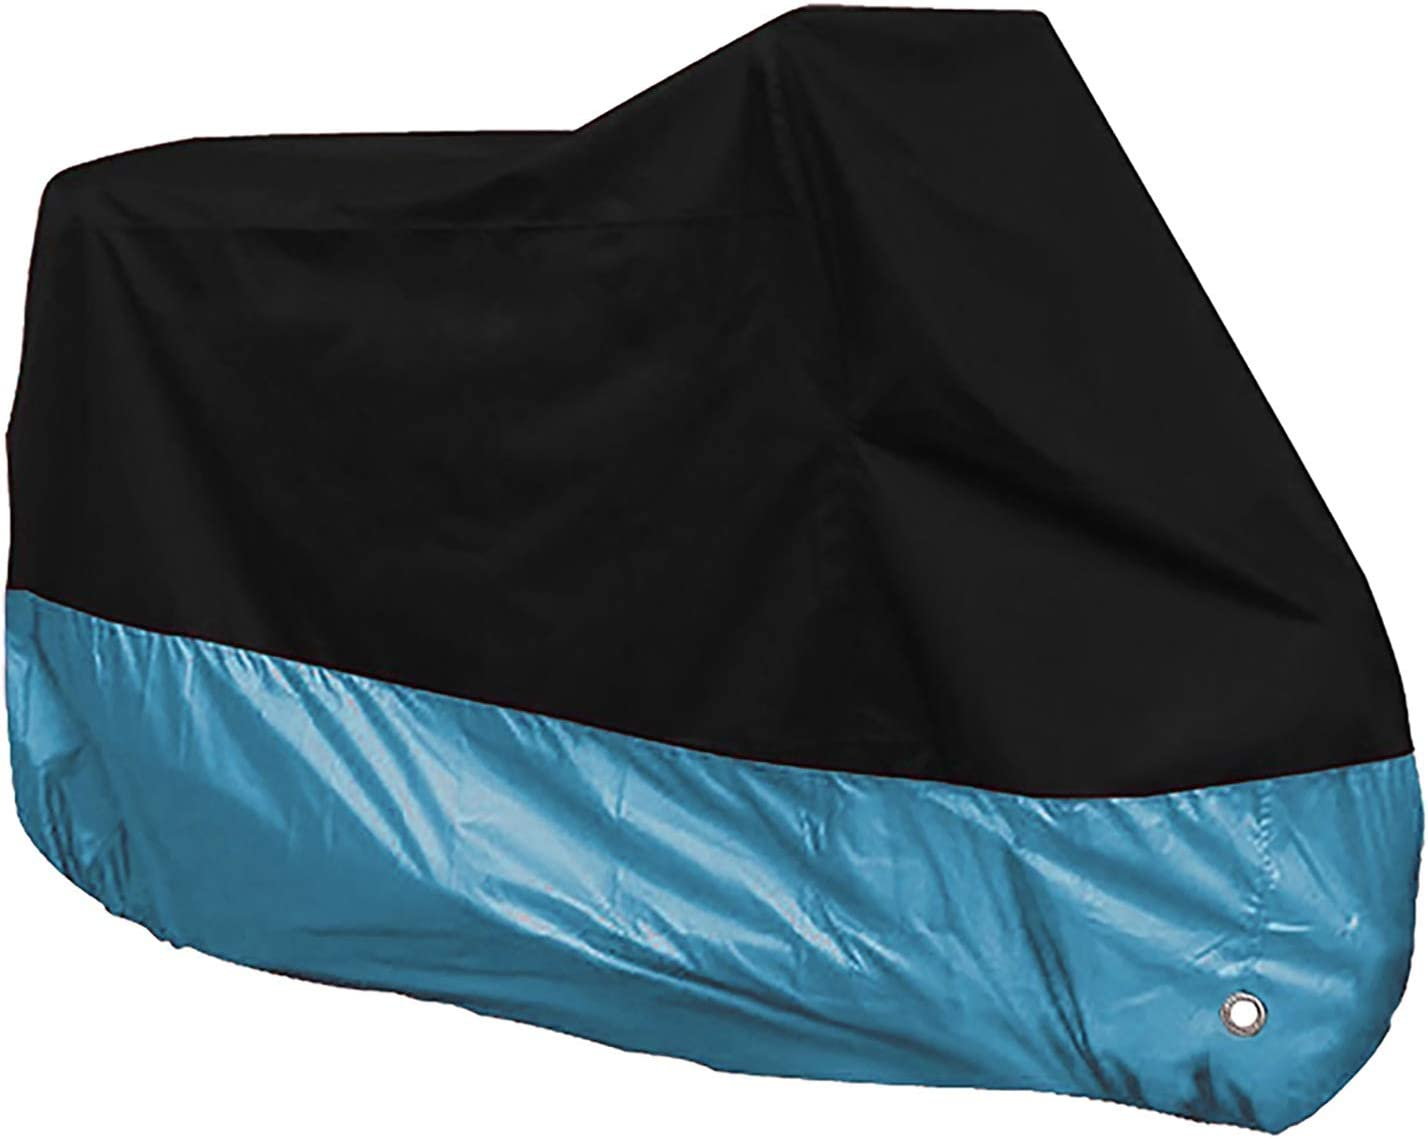 HWHCZ Motorcycle Max 73% OFF Covers Compatible Cover Factory outlet Maquina with